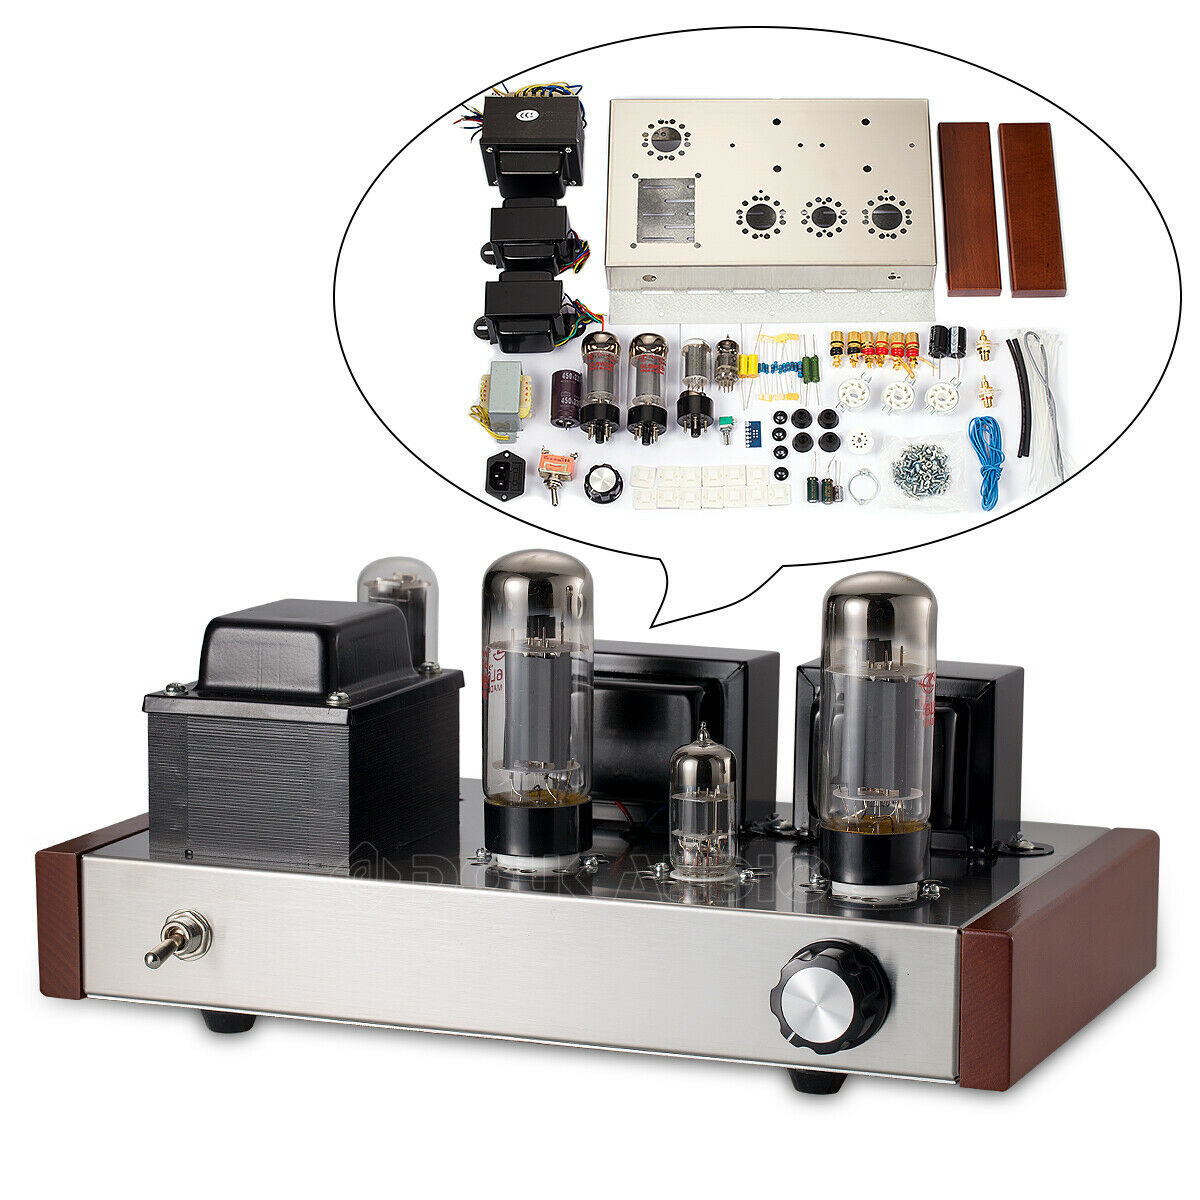 Details about Single-ended 6L6 6N1 Vacuum Tube Amplifier Class A HiFi  Stereo Audio Amp DIY KIT